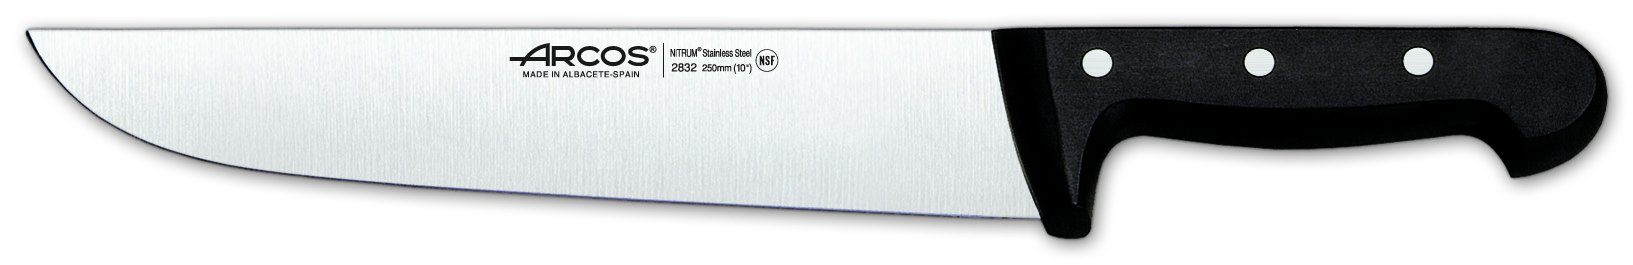 Arcos 10-Inch 250 mm Universal Butcher Knife by ARCOS (Image #1)